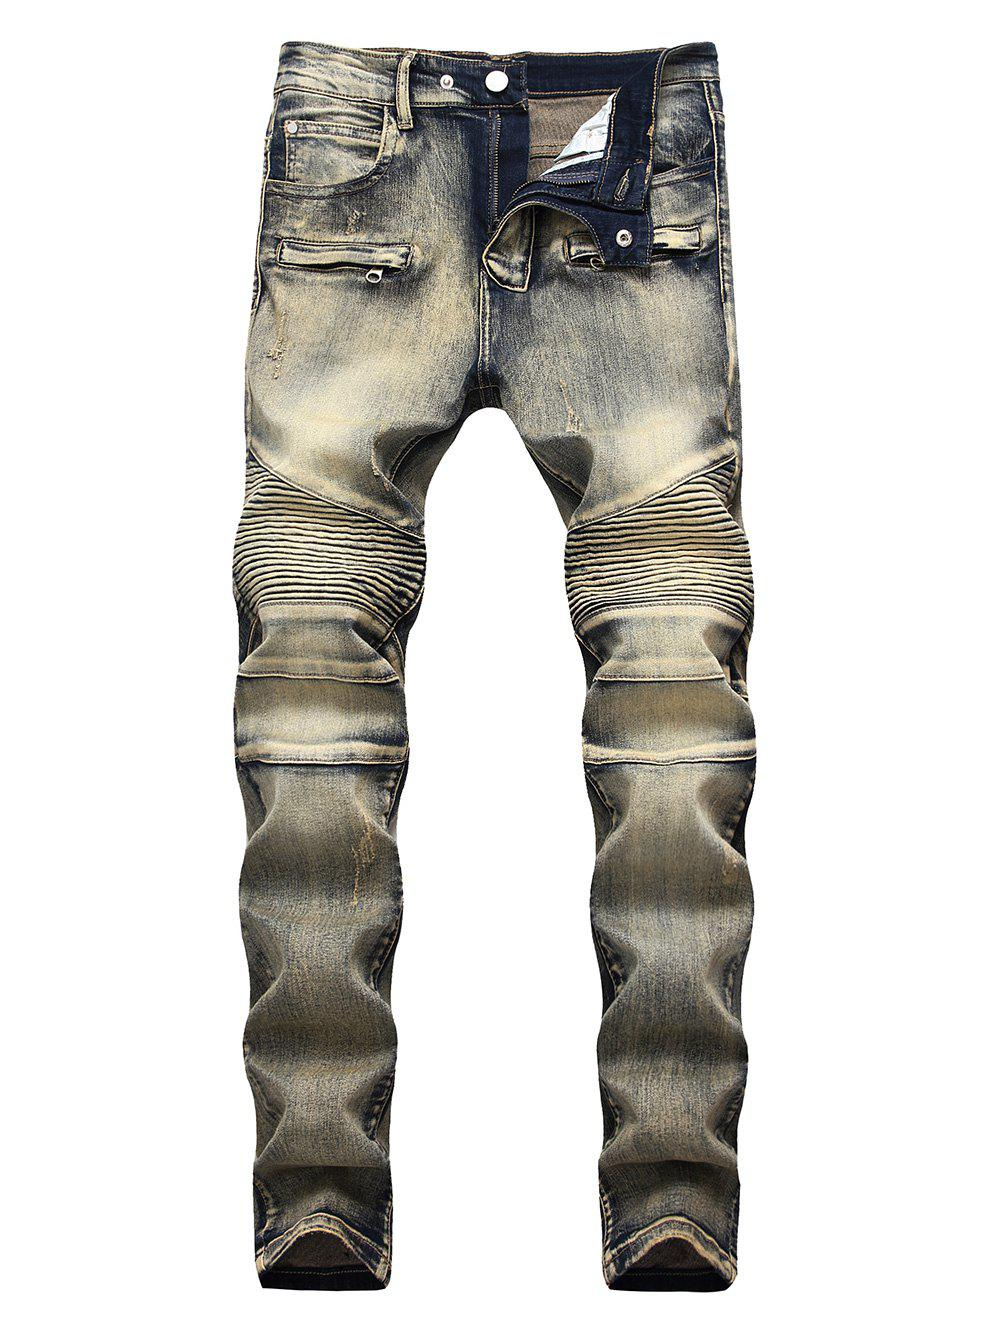 Retro Patchwork Narrow Feet Biker Jeans - KHAKI 36